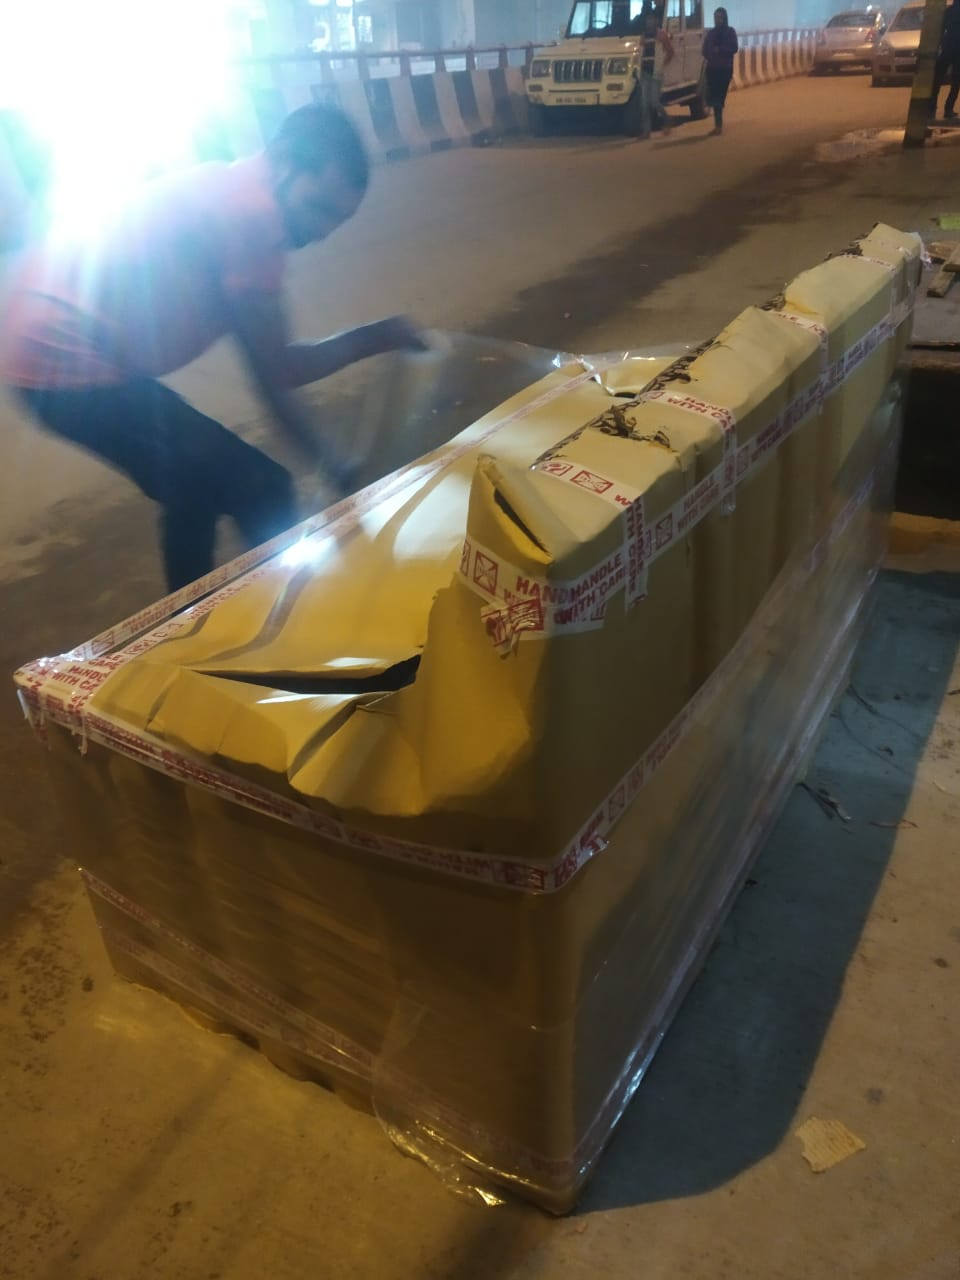 Packers and movers in Tilak Nagar